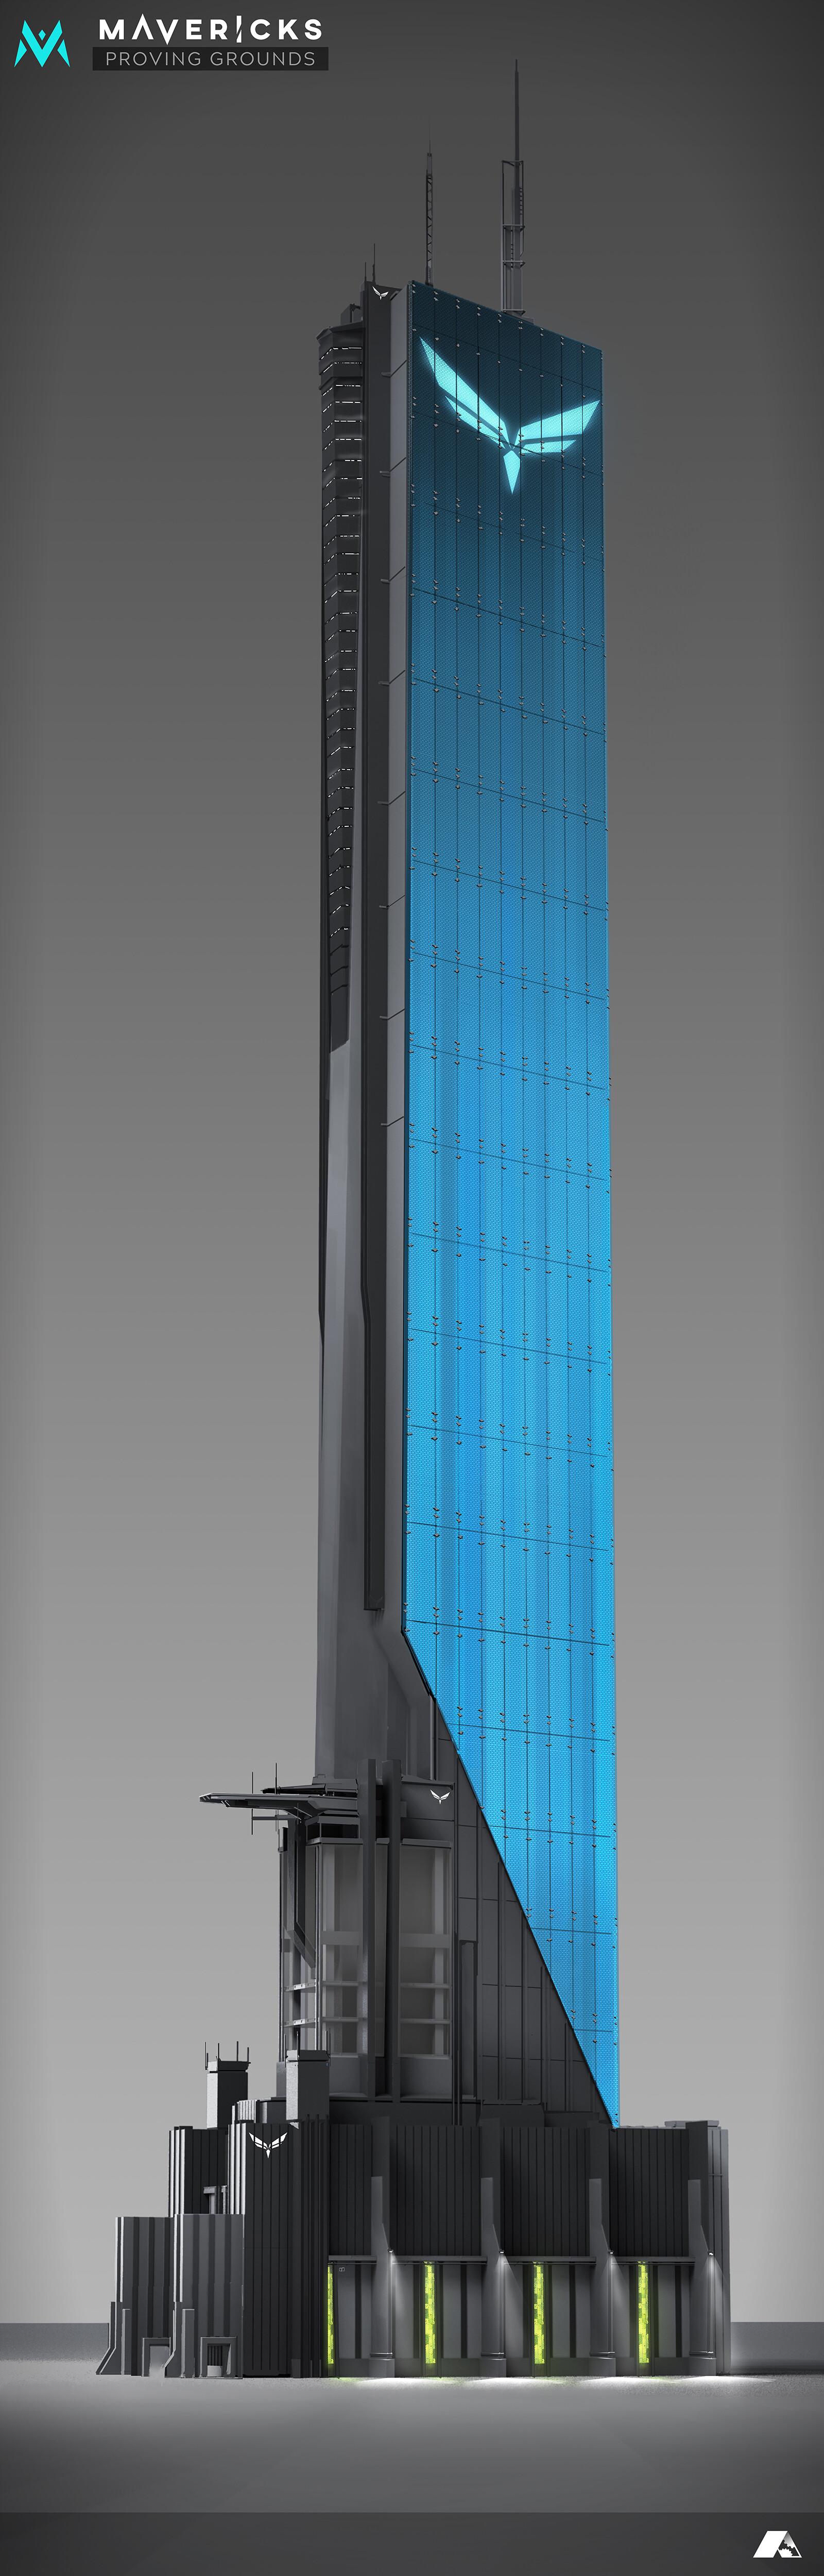 Connor sheehan print tower renderjpg